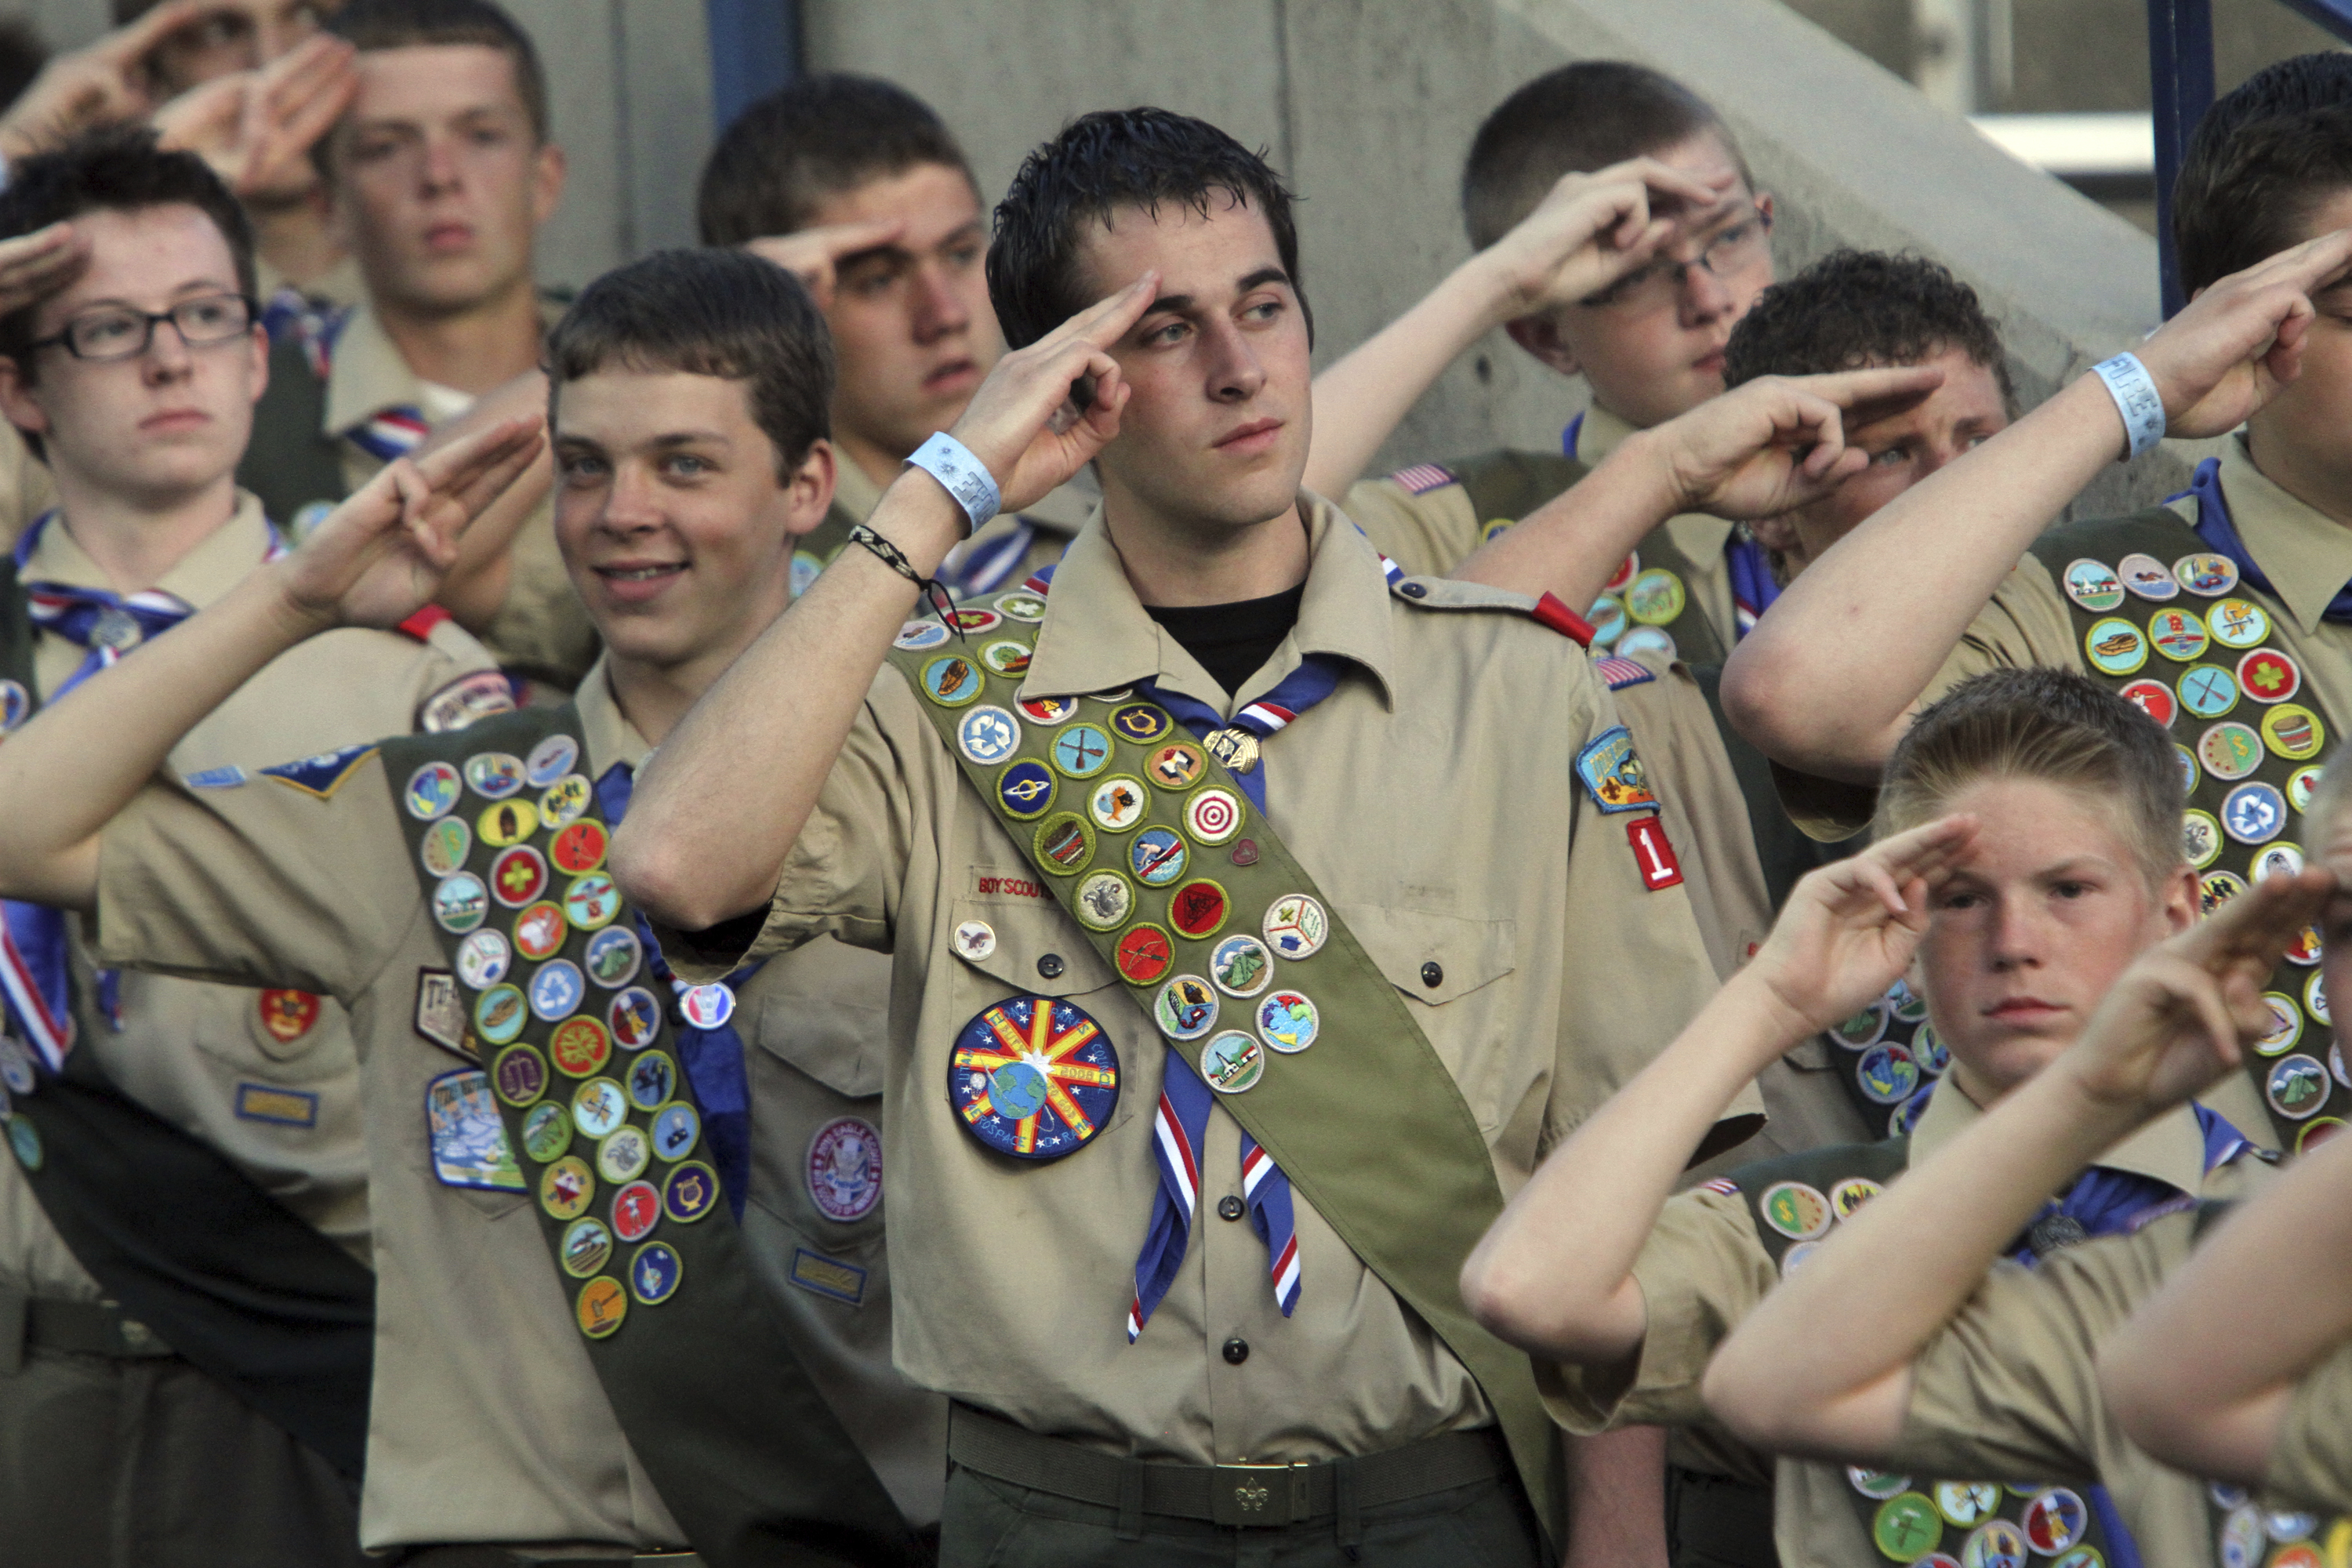 scouts boy america mormon church utah mormons lds scout salute ties scouting older national part provo cut bing stadium fire